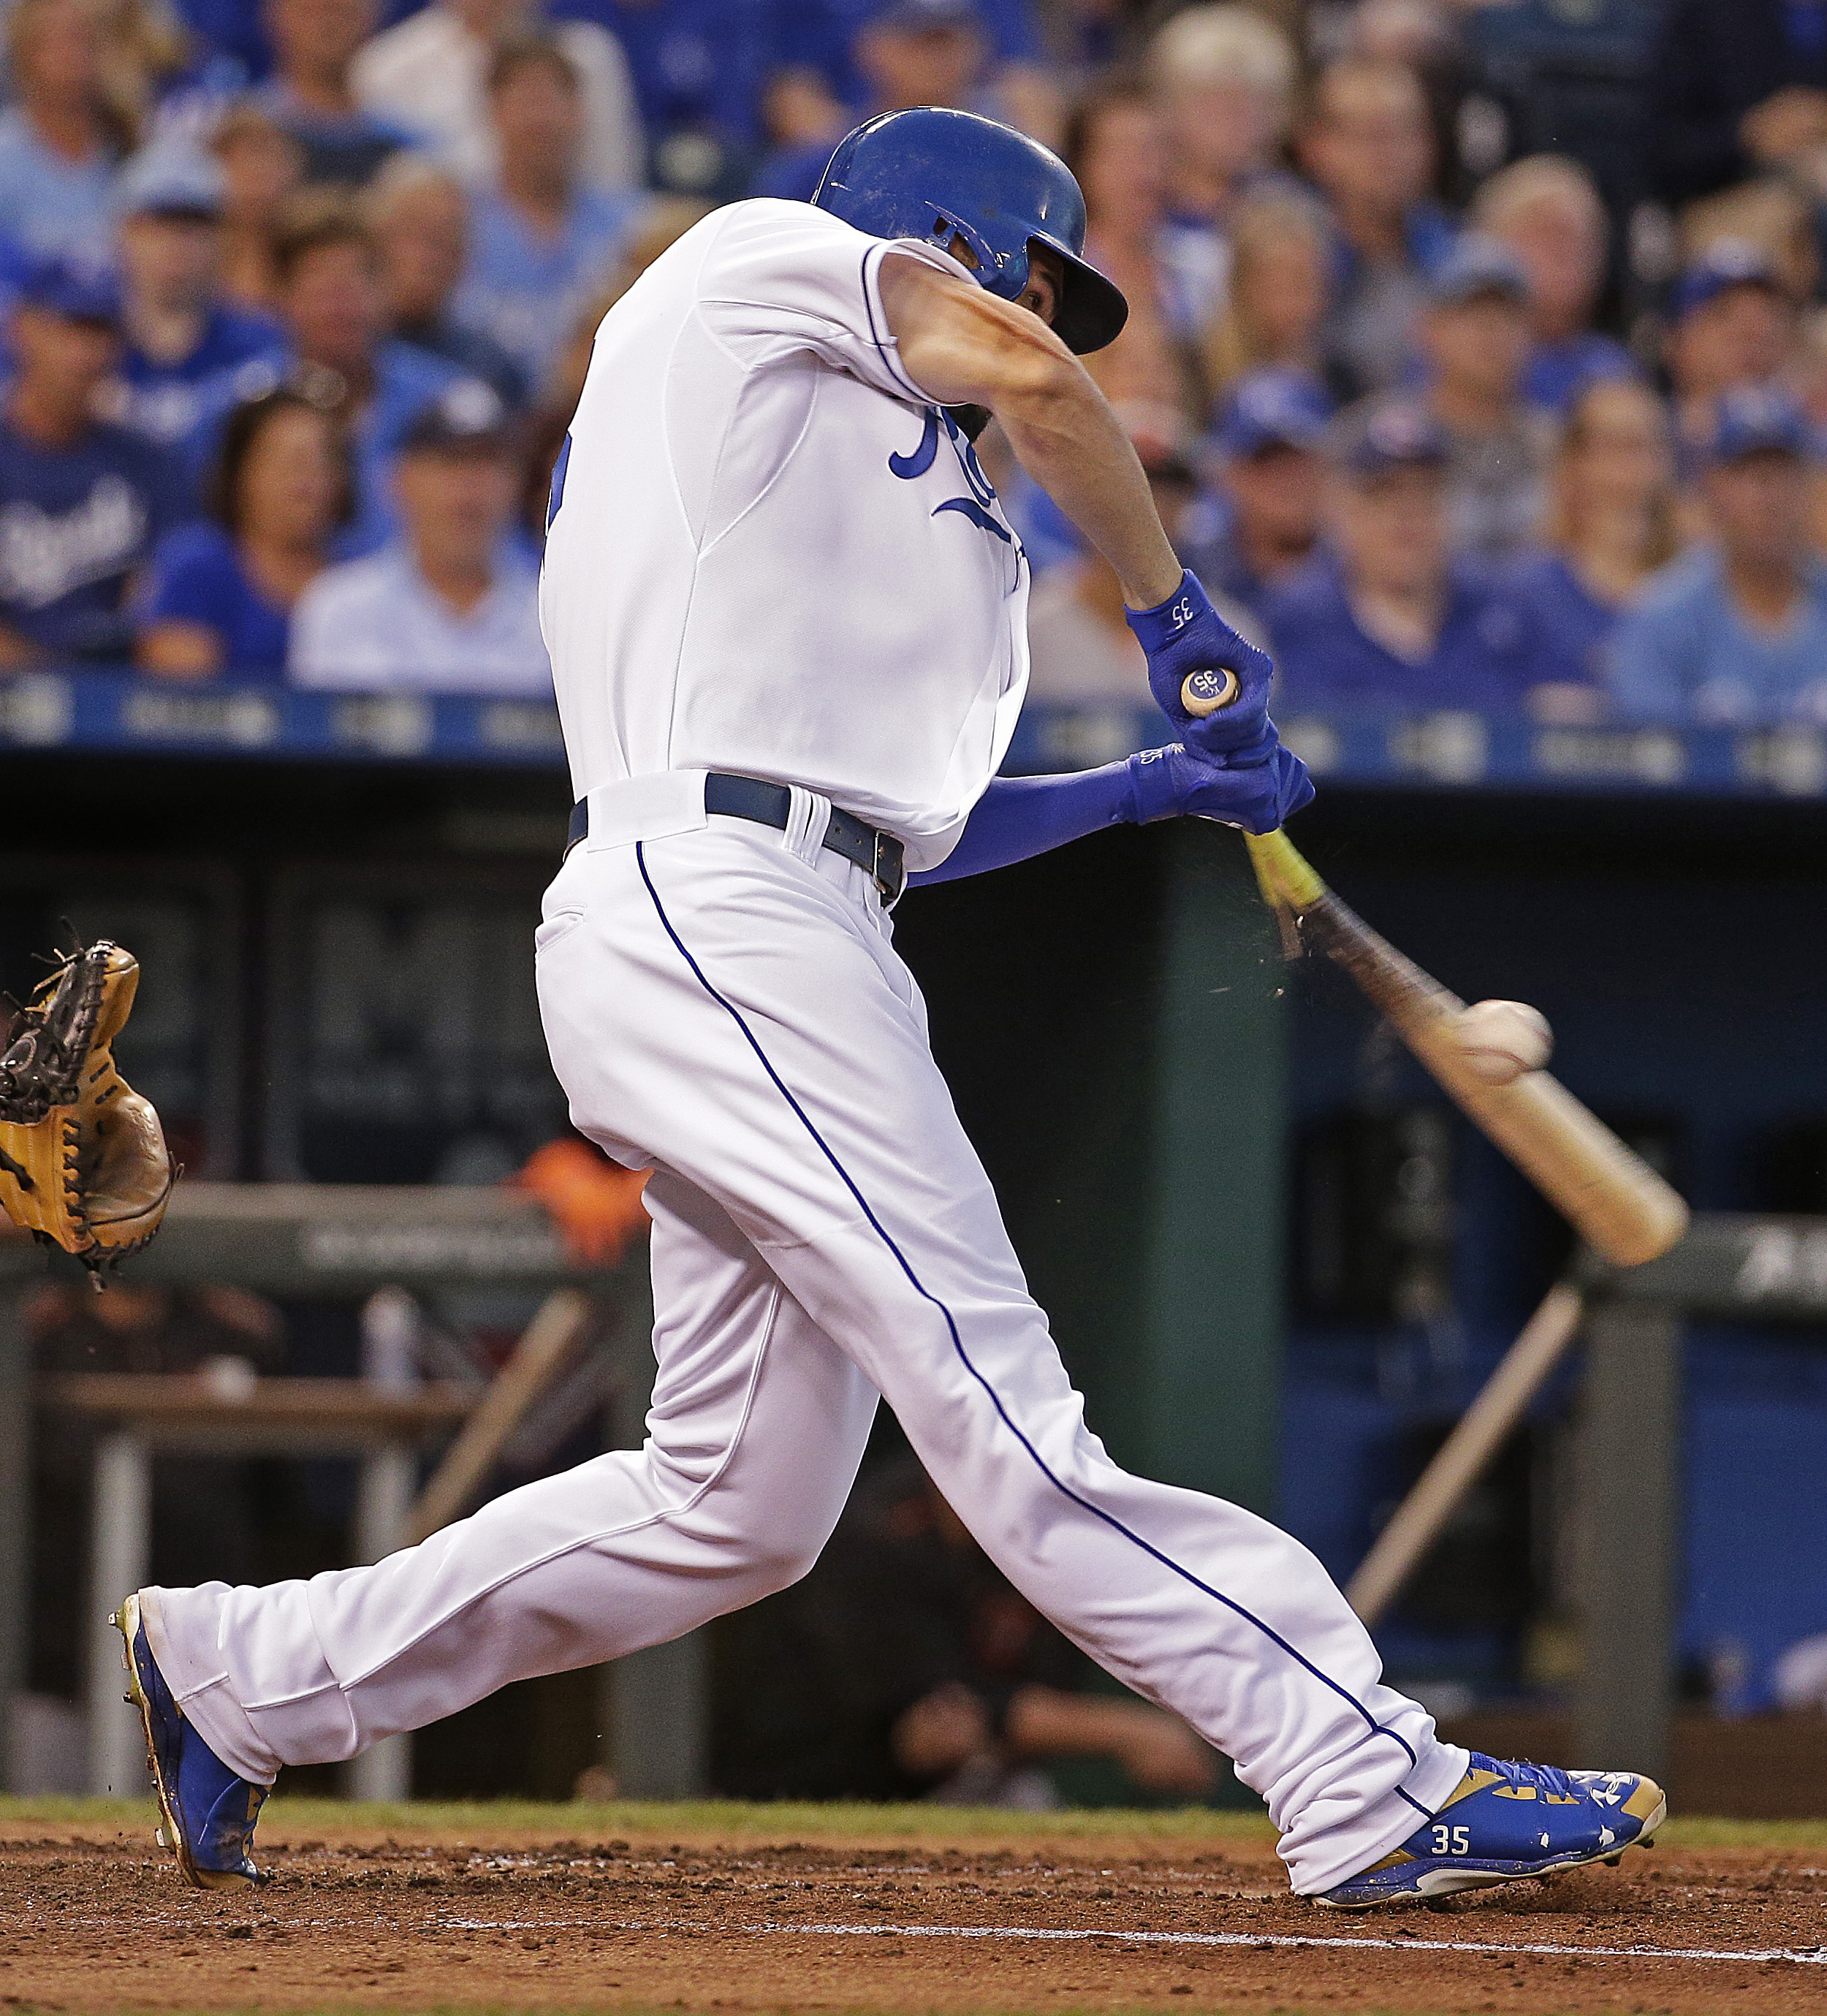 Kansas City Royals' Eric Hosmer breaks his bat as he hits into a fielders choice to score Ben Zobrist during the third inning of a baseball game against the Baltimore Orioles Monday, Aug. 24, 2015, in Kansas City, Mo. (AP Photo/Charlie Riedel)